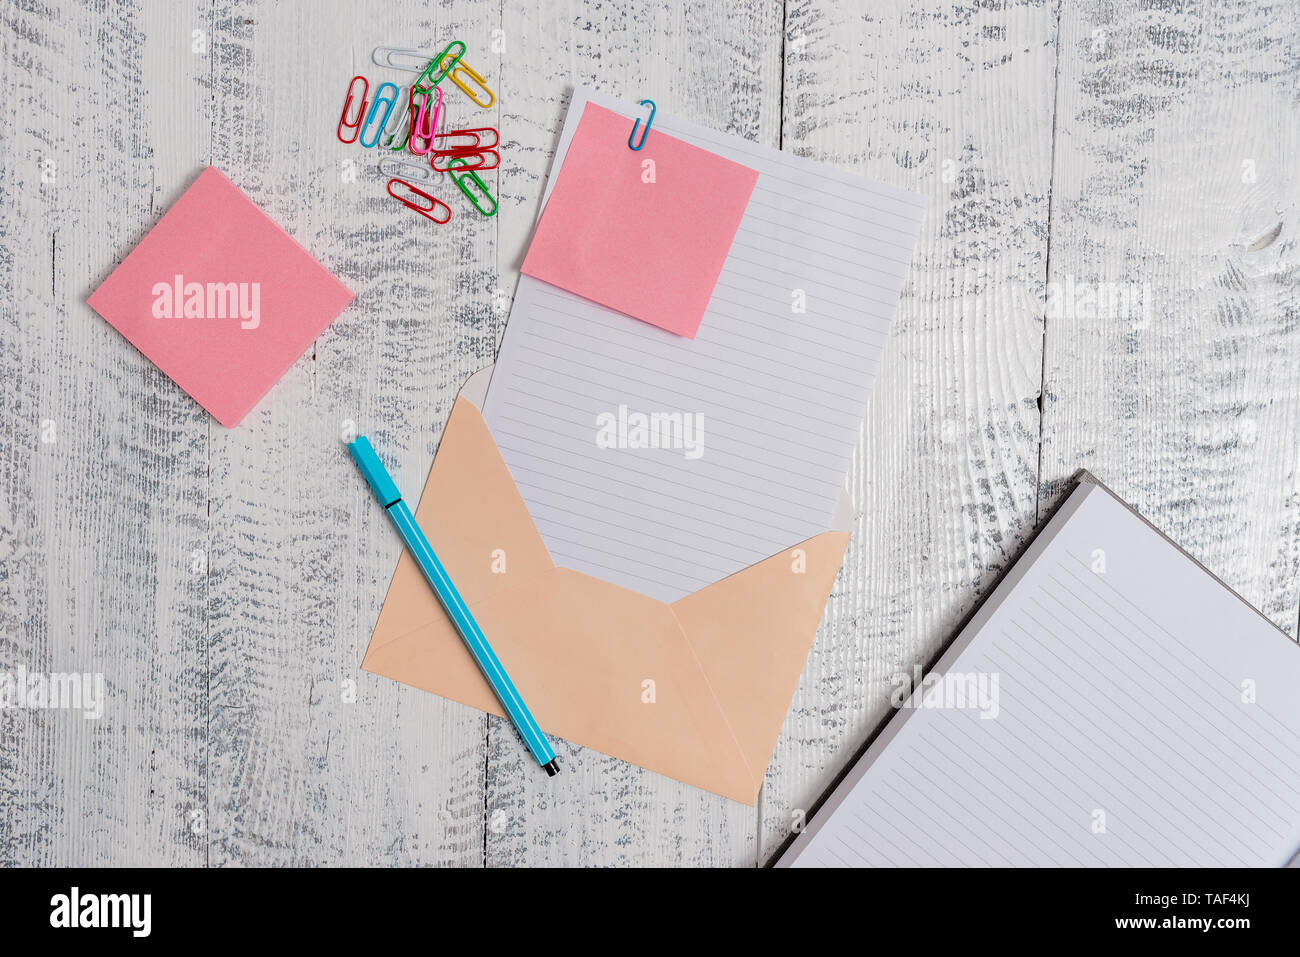 Envelope sheet paper sticky notes ballpoint notepad clips wooden background - Stock Image